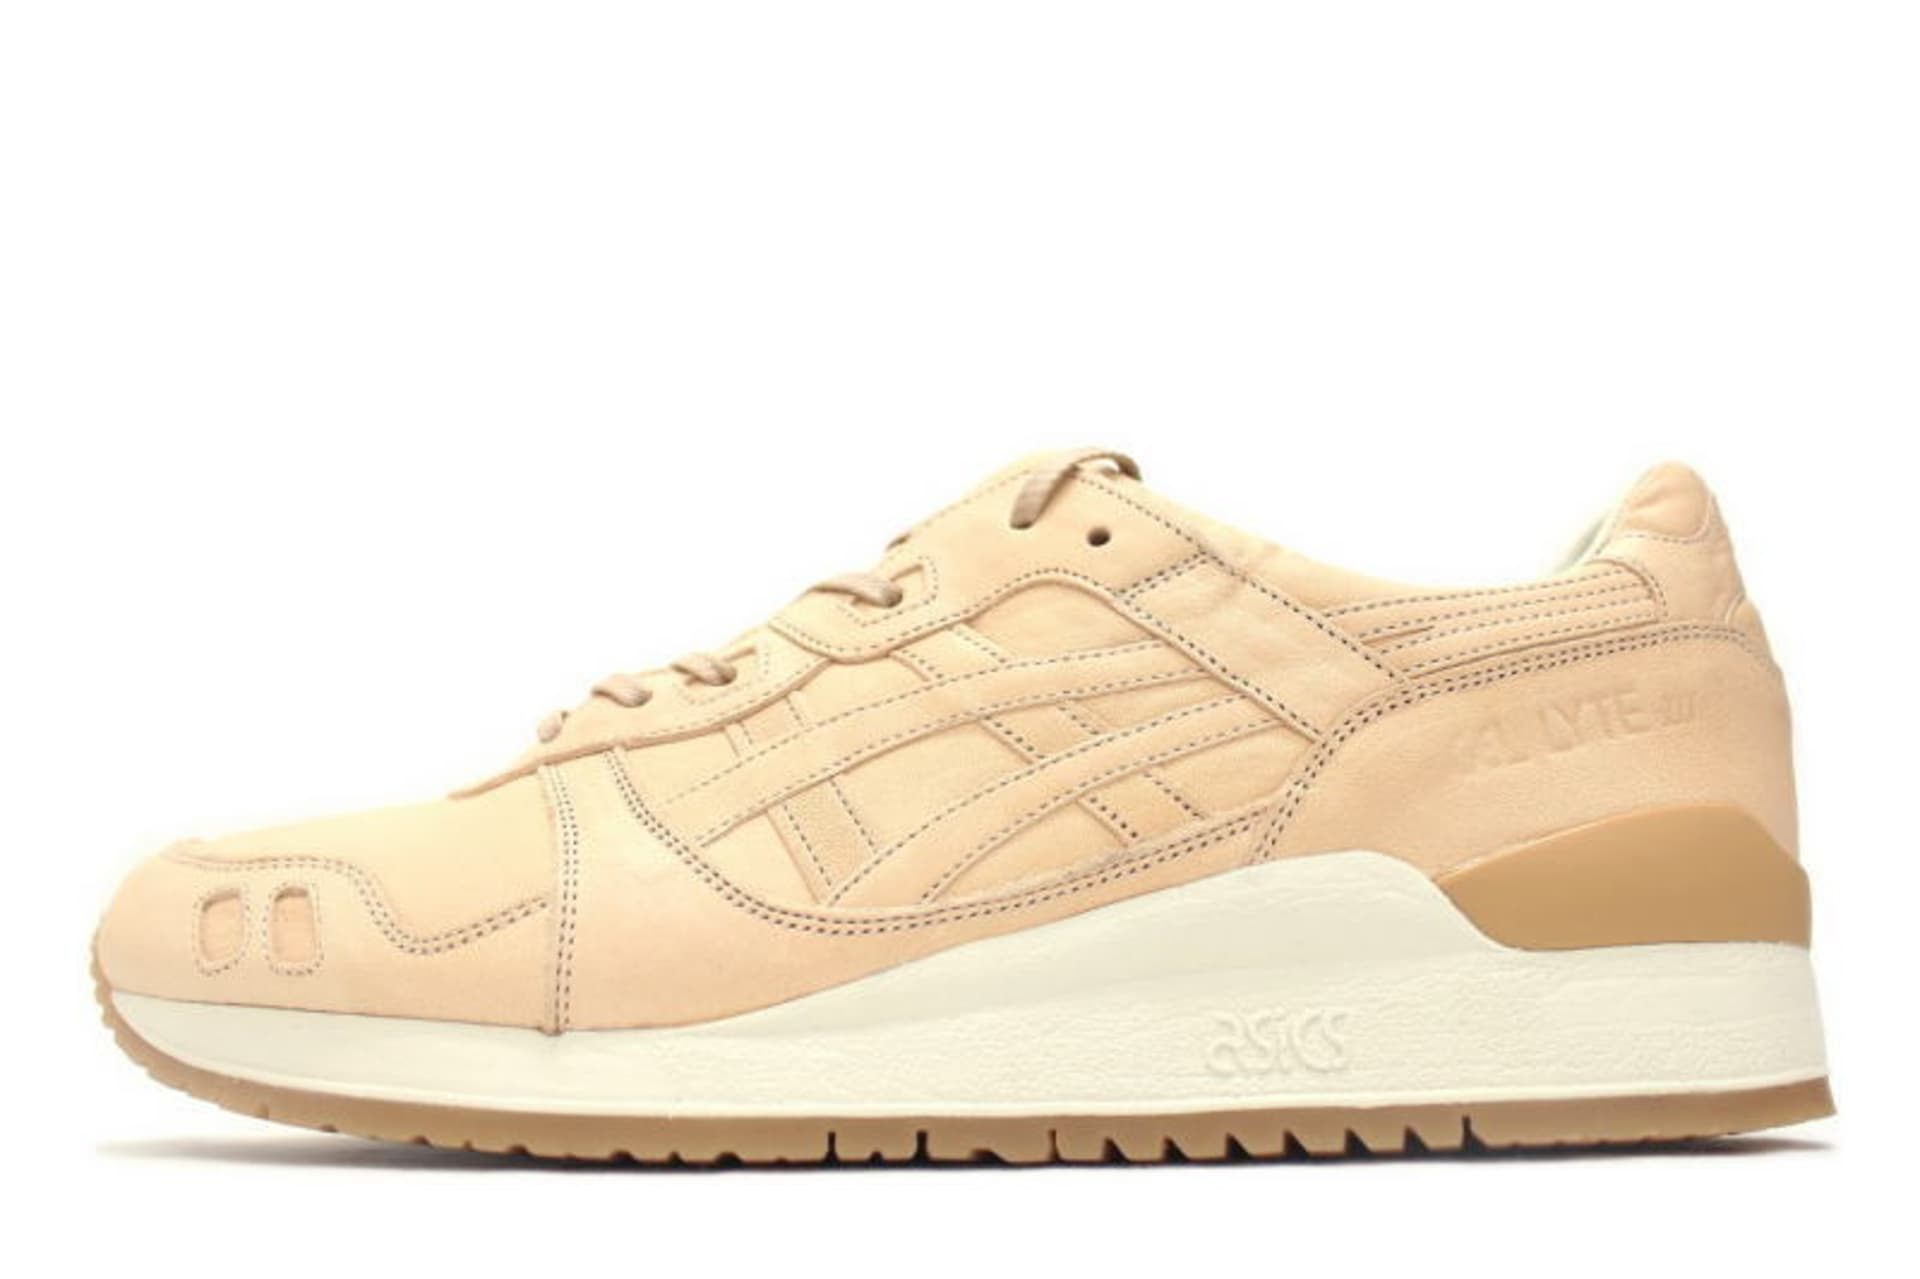 finest selection 05645 63785 ASICS GEL-Lyte III